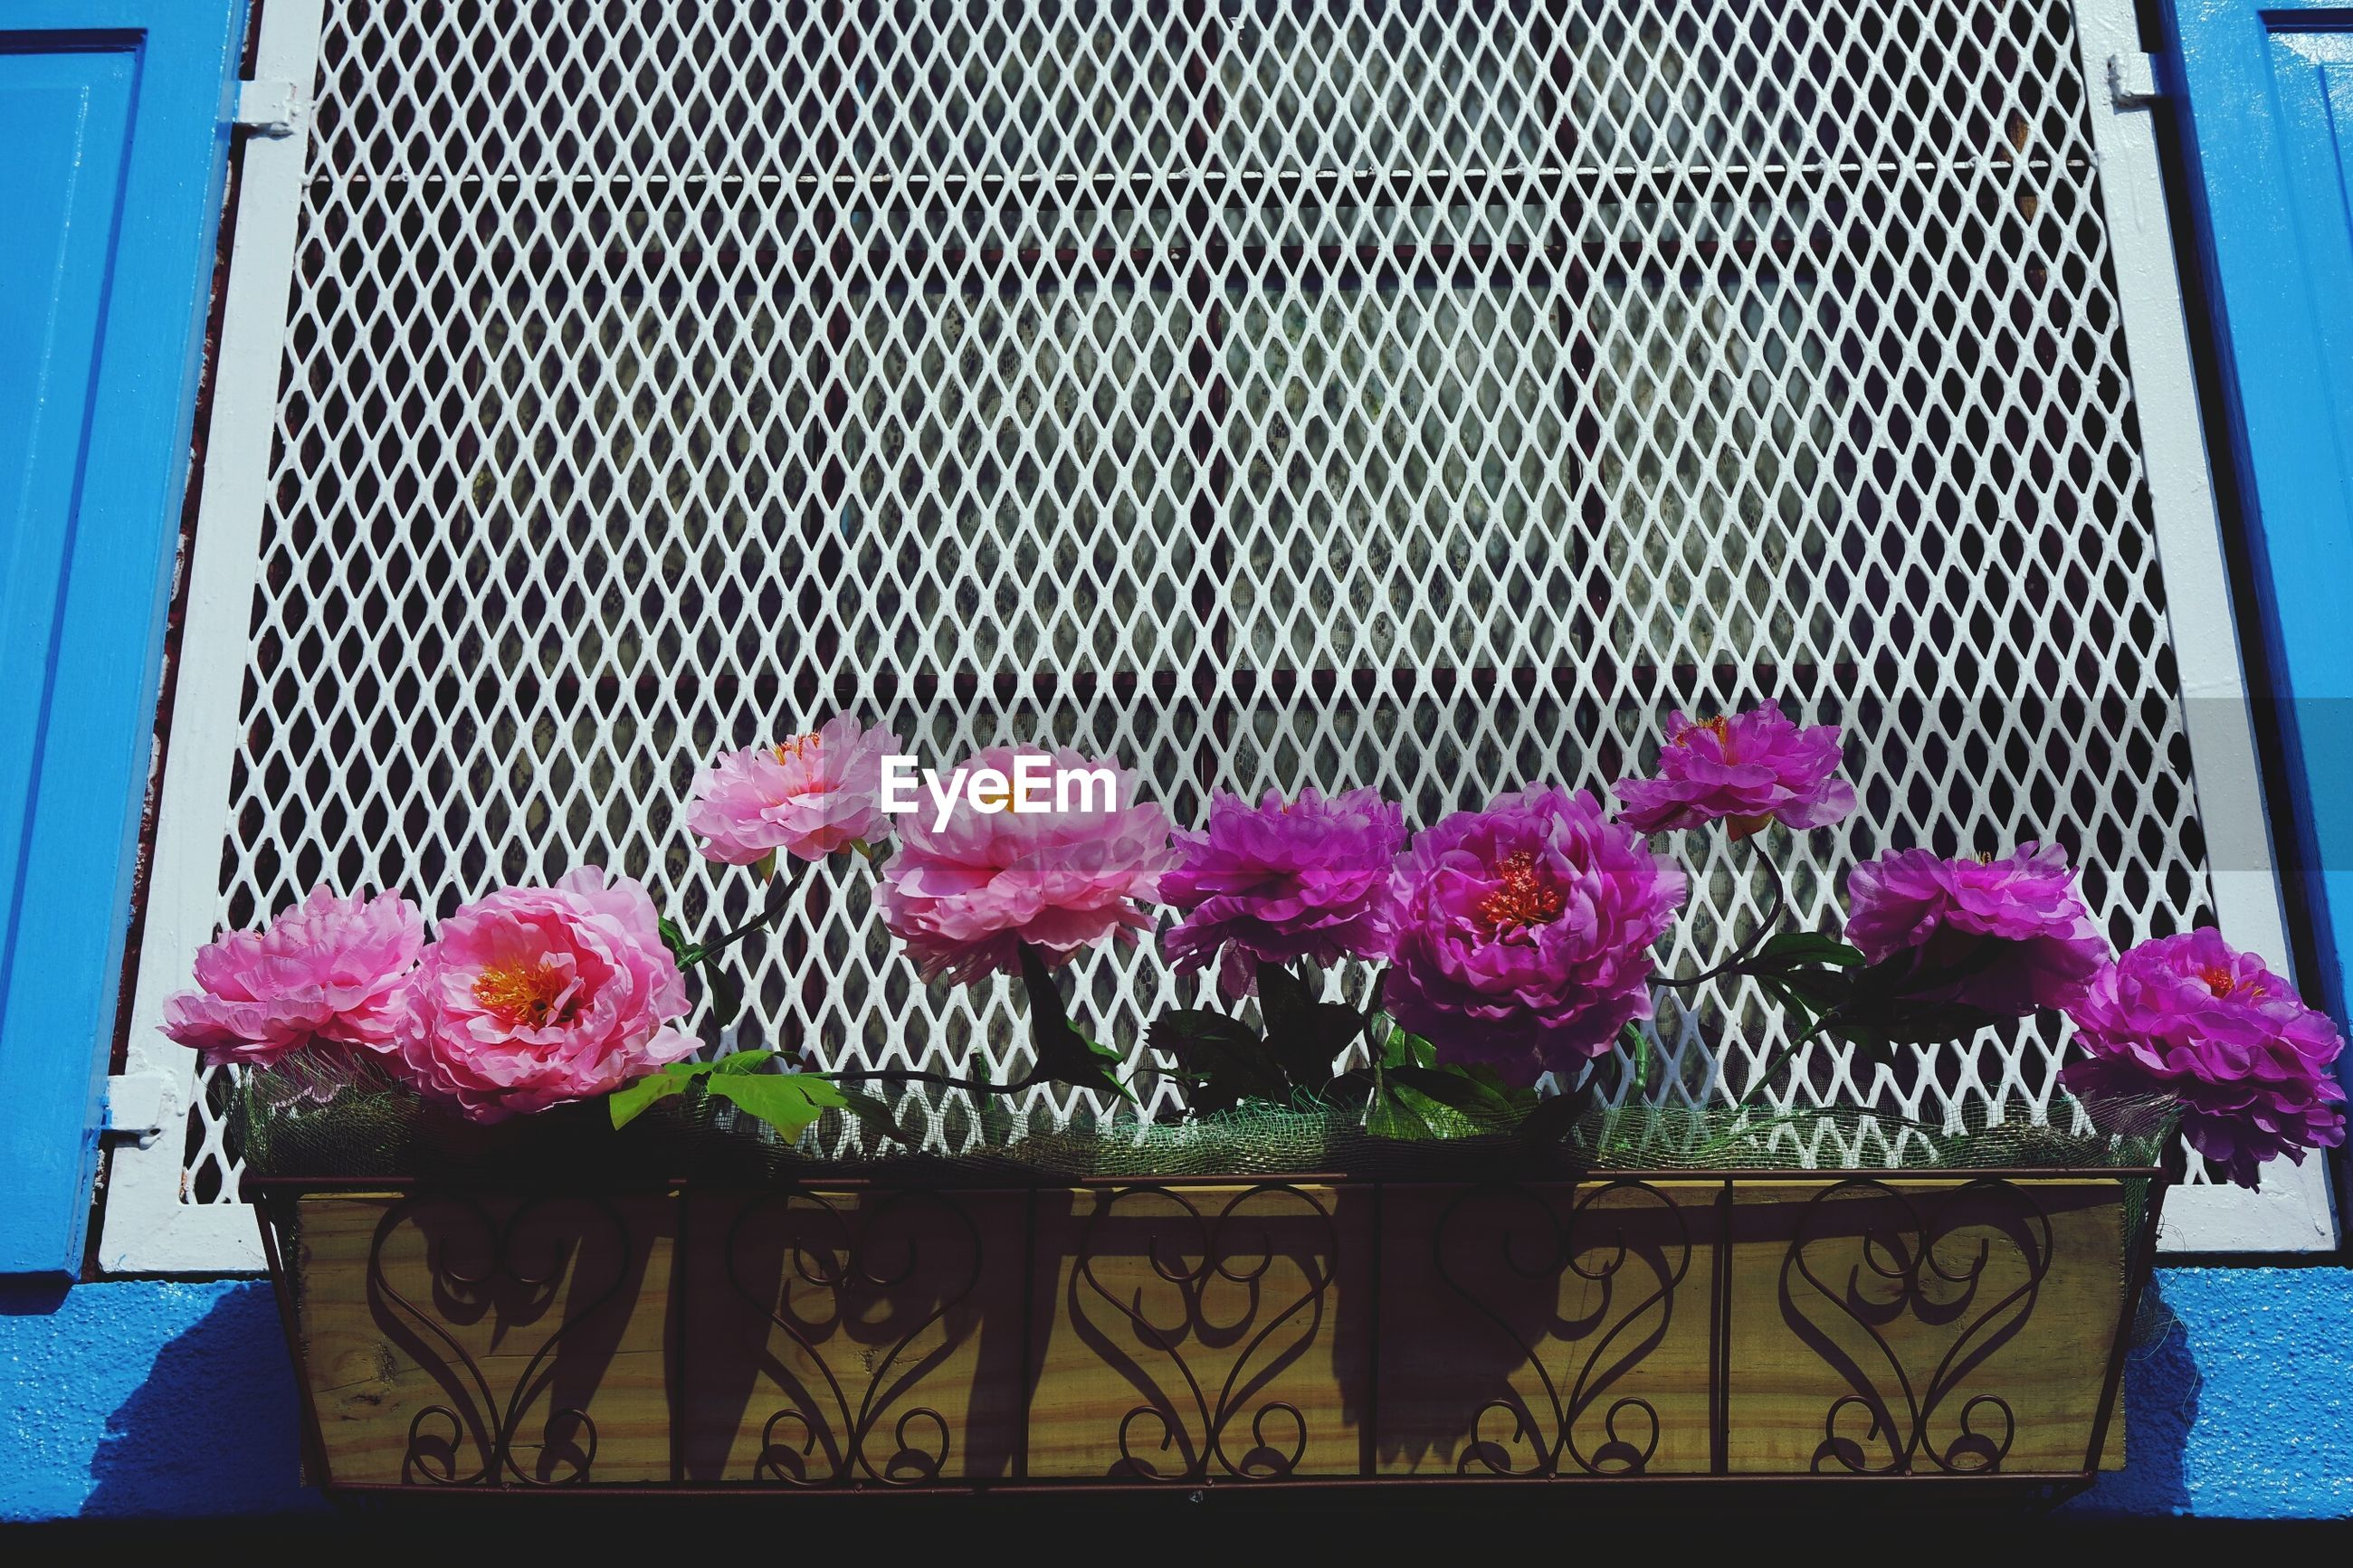 Close-up of flowers growing on window box